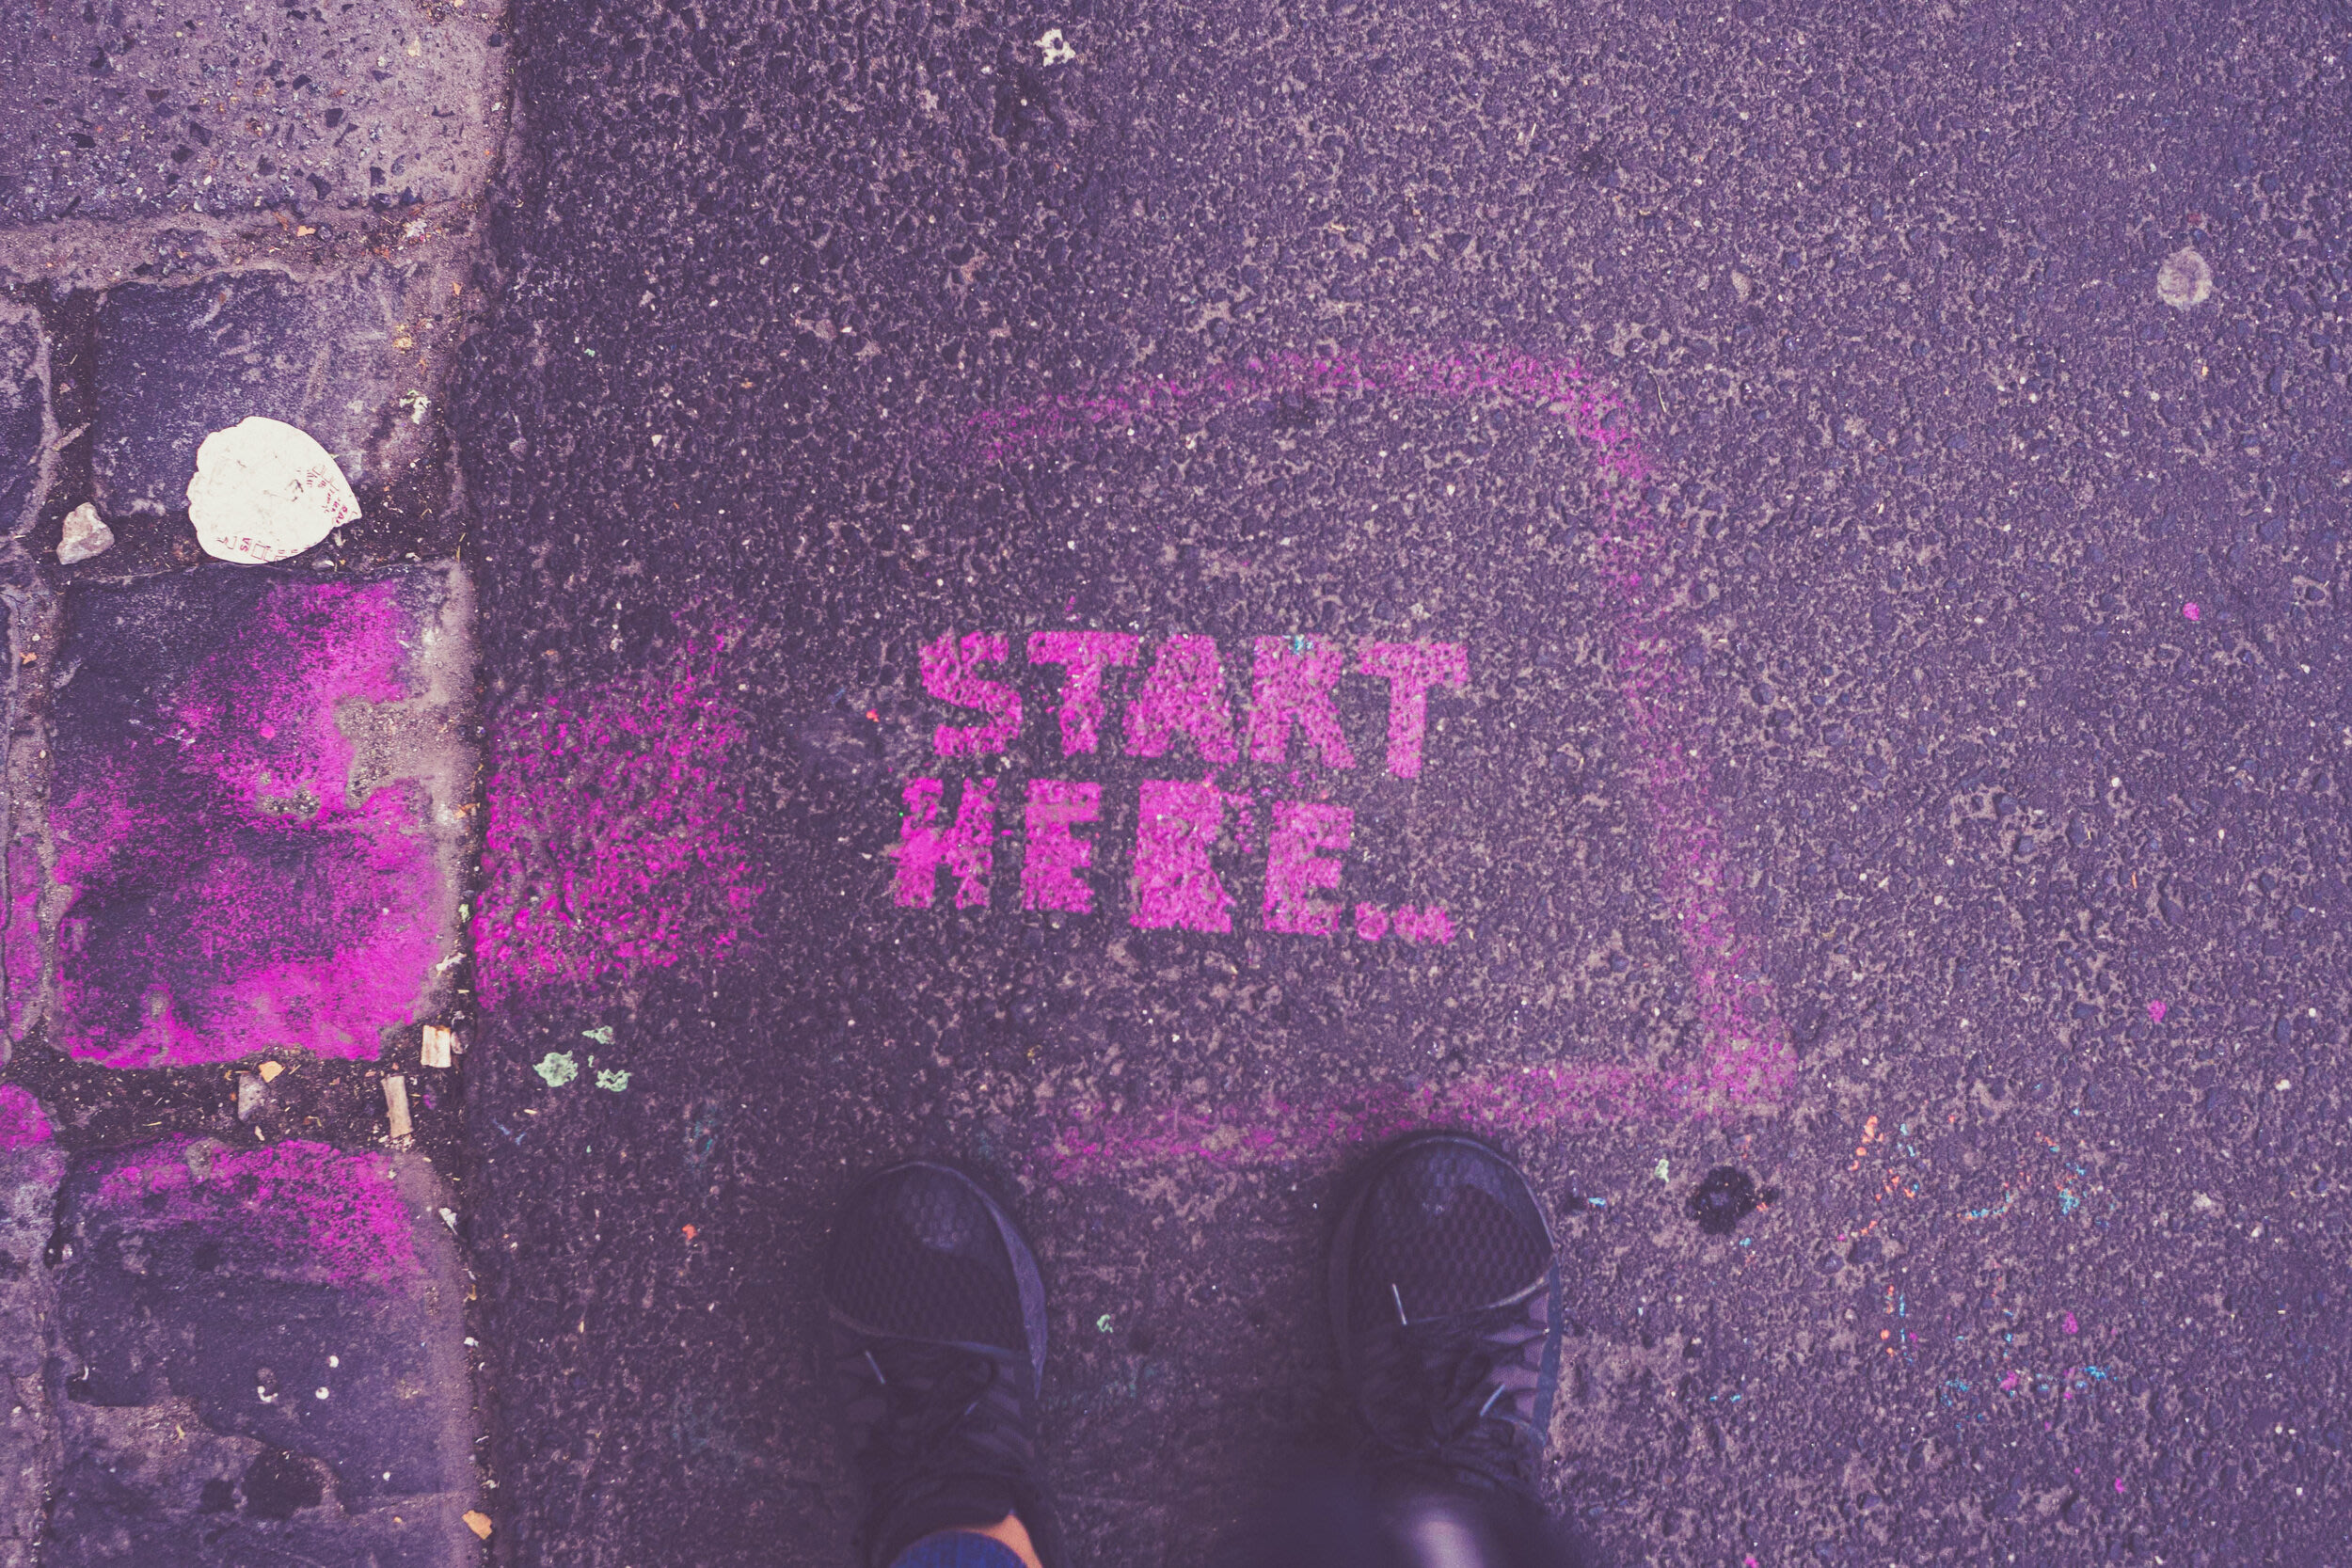 The words 'start here' written on the pavement.